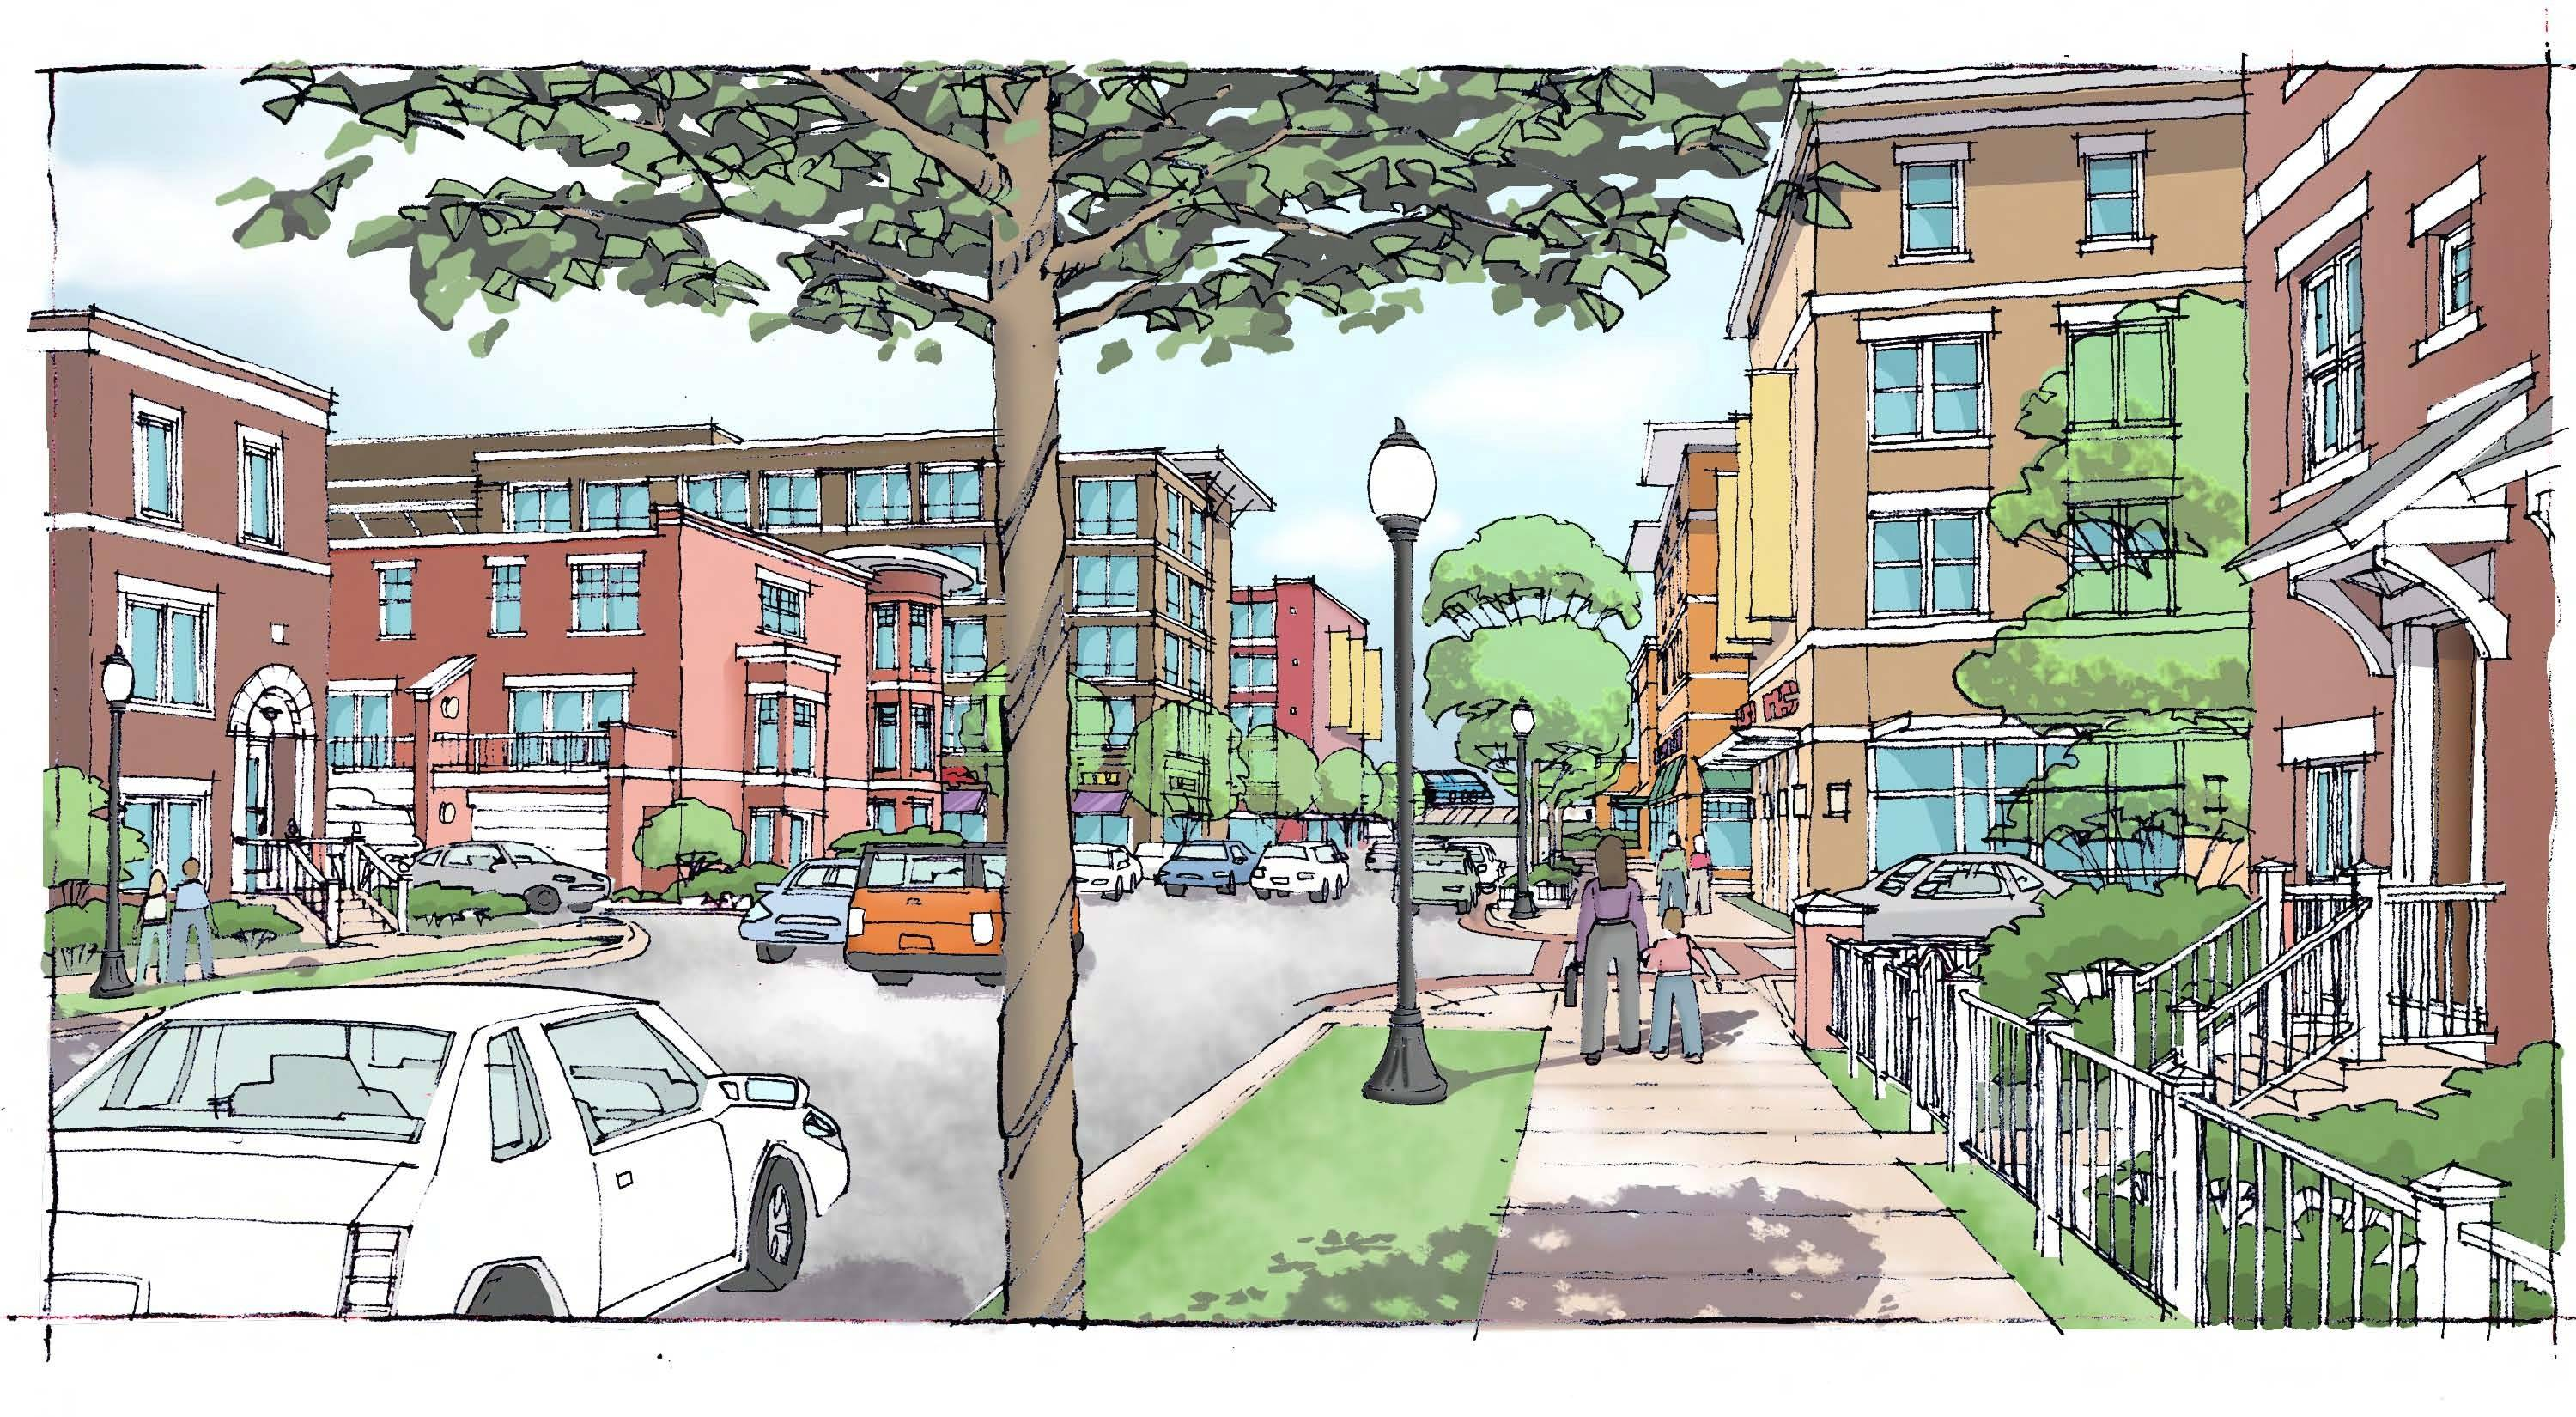 Taxing bodies sign off on Hickory Kensington redevelopment in Arlington Hts.